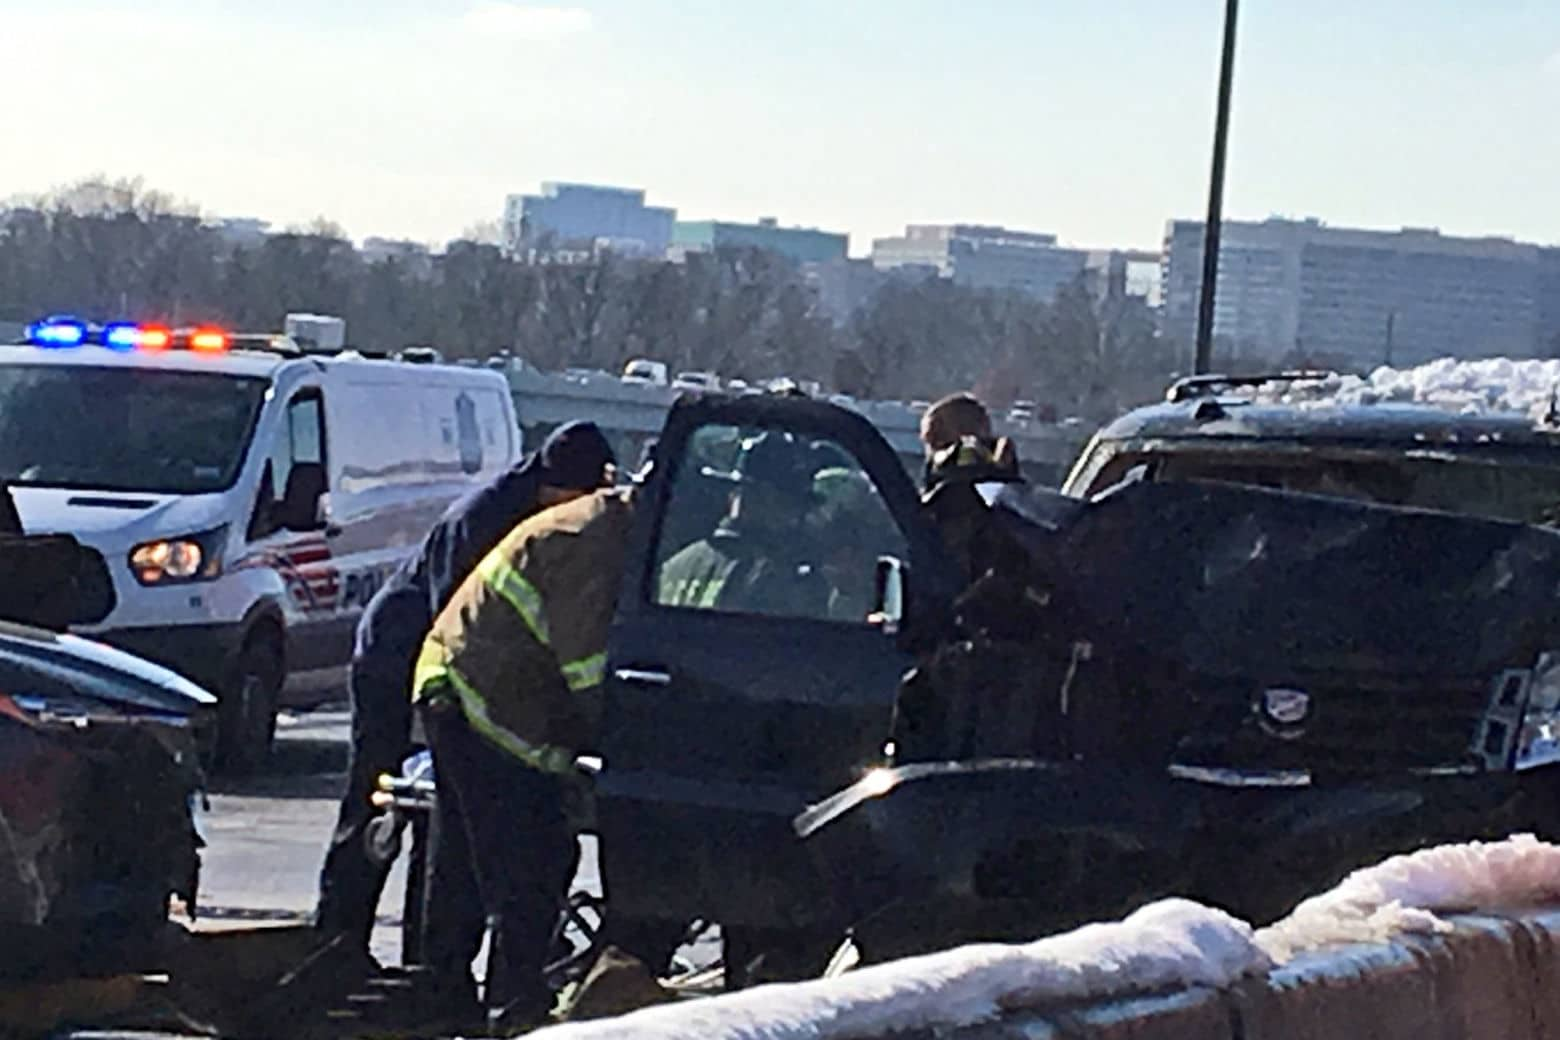 Four people were injured after a crash on the 14th Street Bridge on Tuesday. (Courtesy D.C. Fire and EMS)